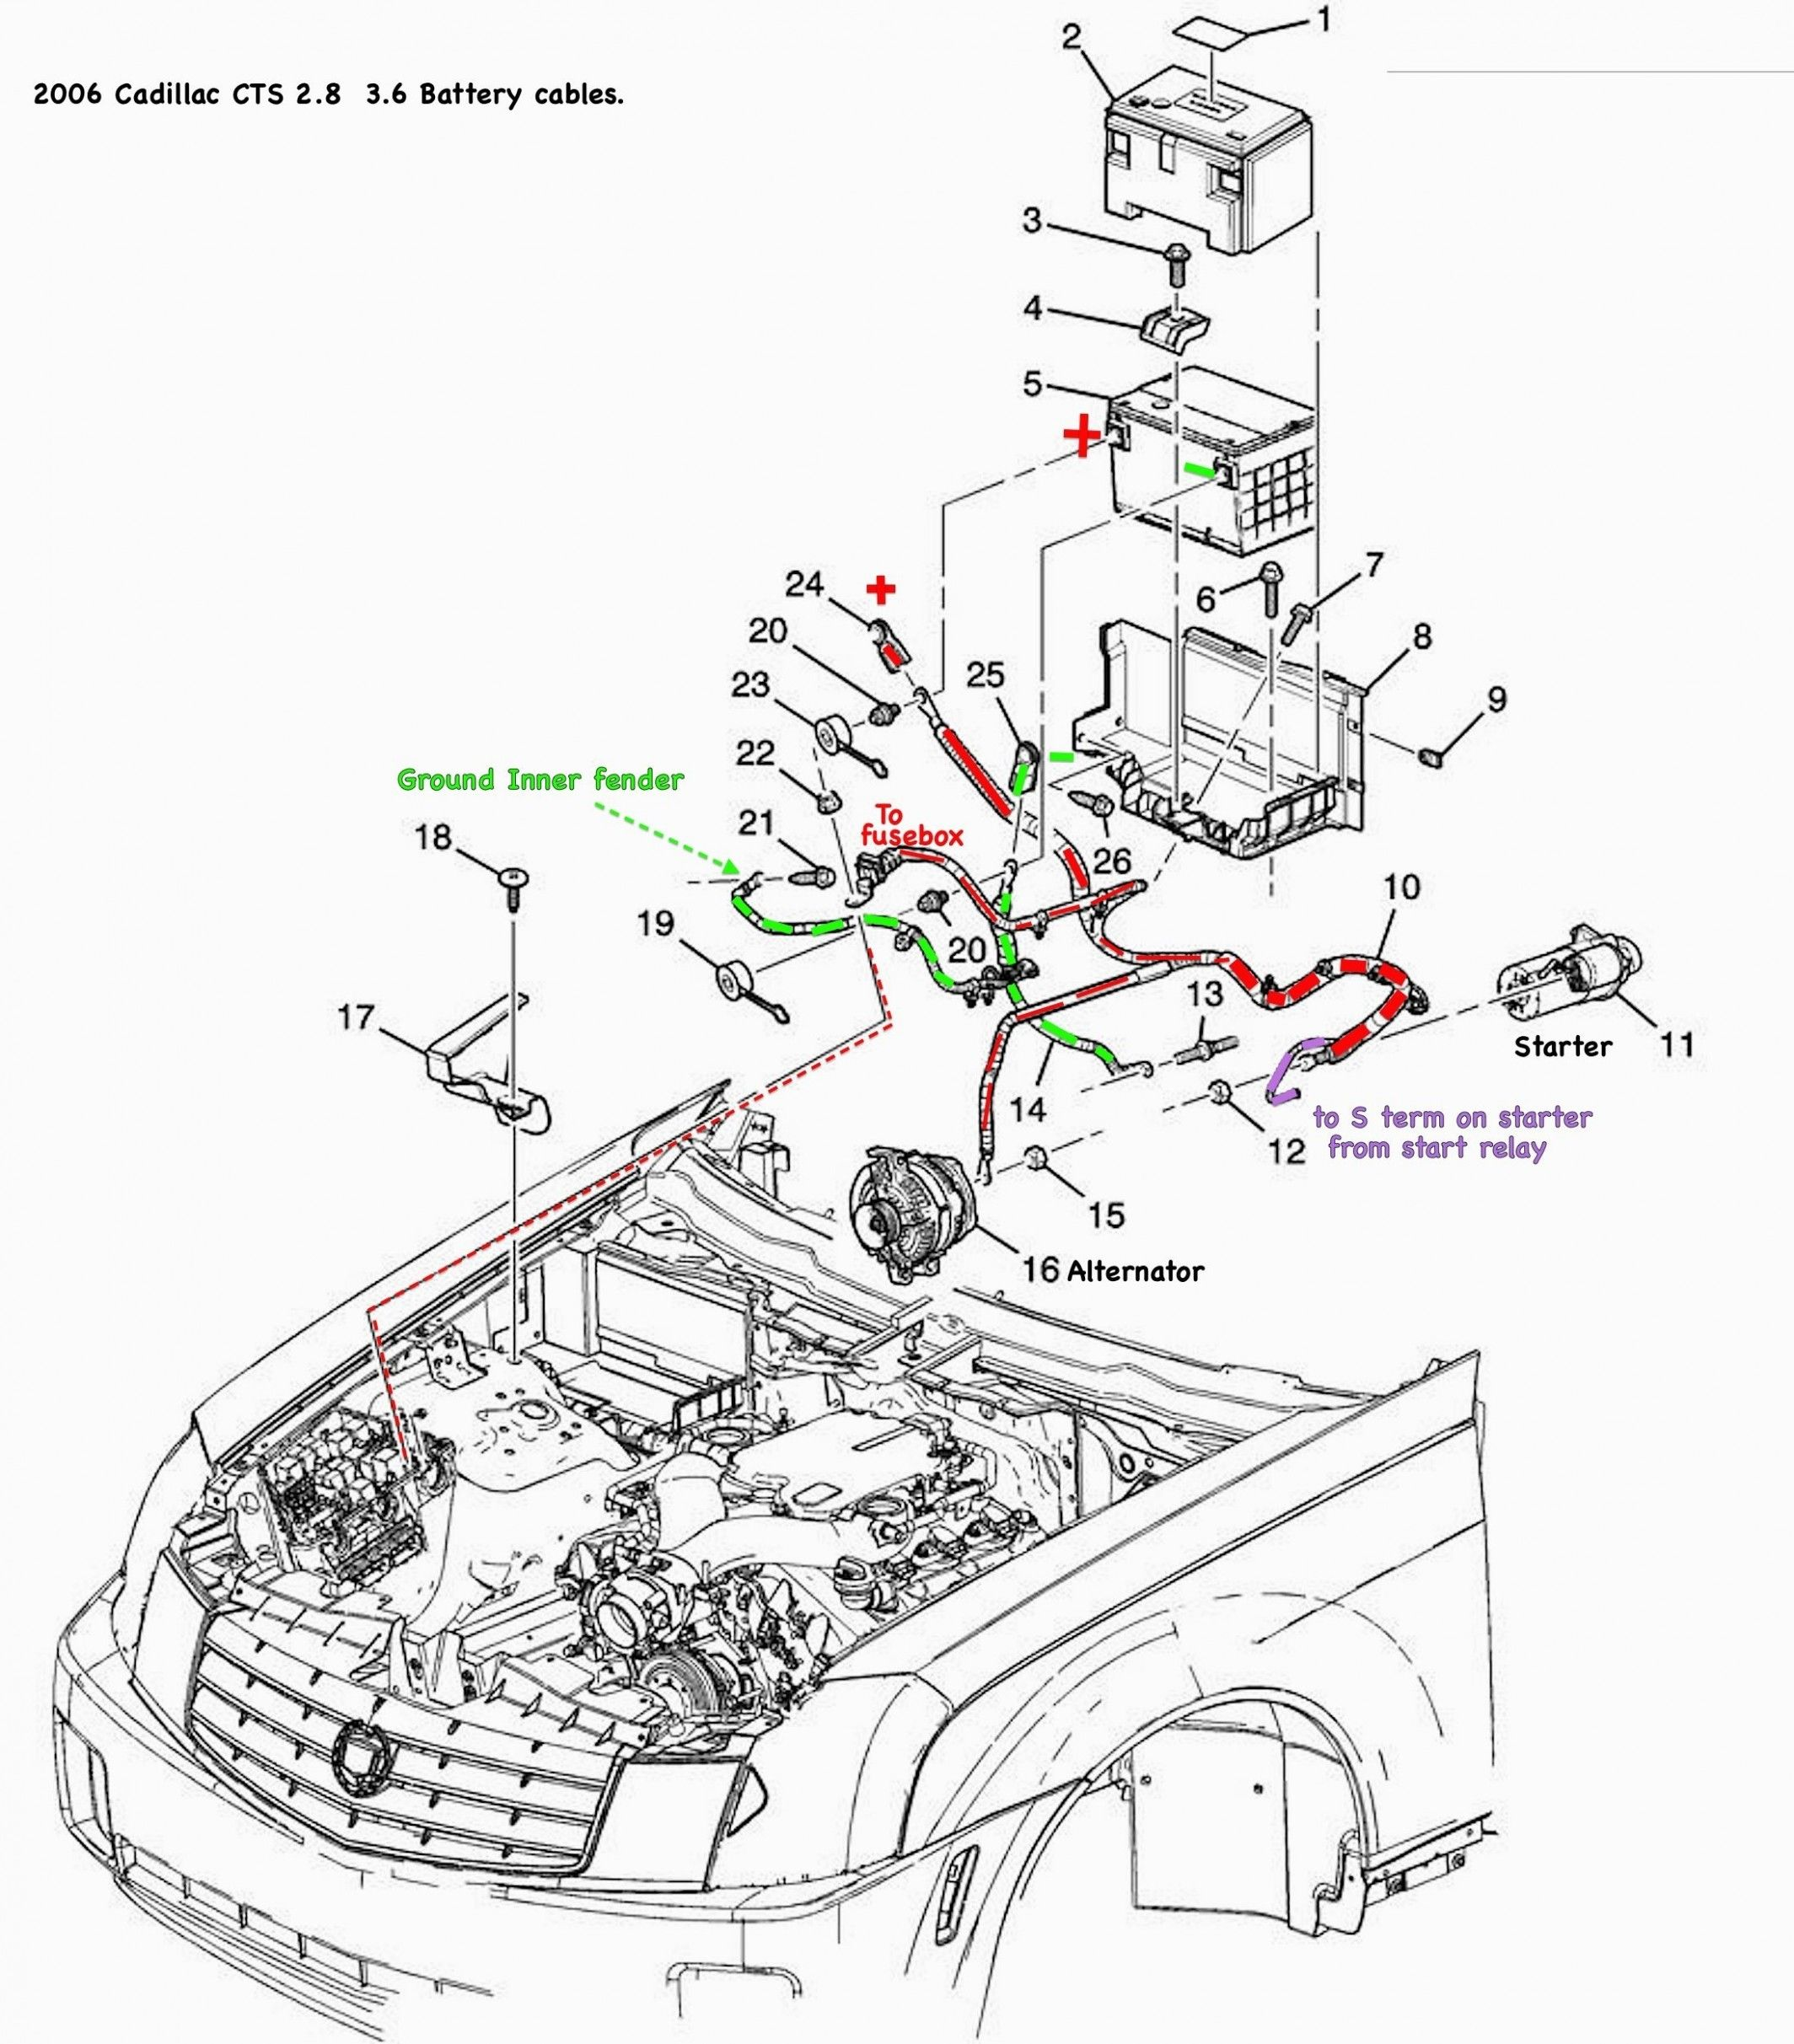 Cadillac Sts Engine Diagram - Wiring Diagram Direct grow-produce -  grow-produce.siciliabeb.it | Wiring Diagram For 2003 Cadillac Sls |  | grow-produce.siciliabeb.it